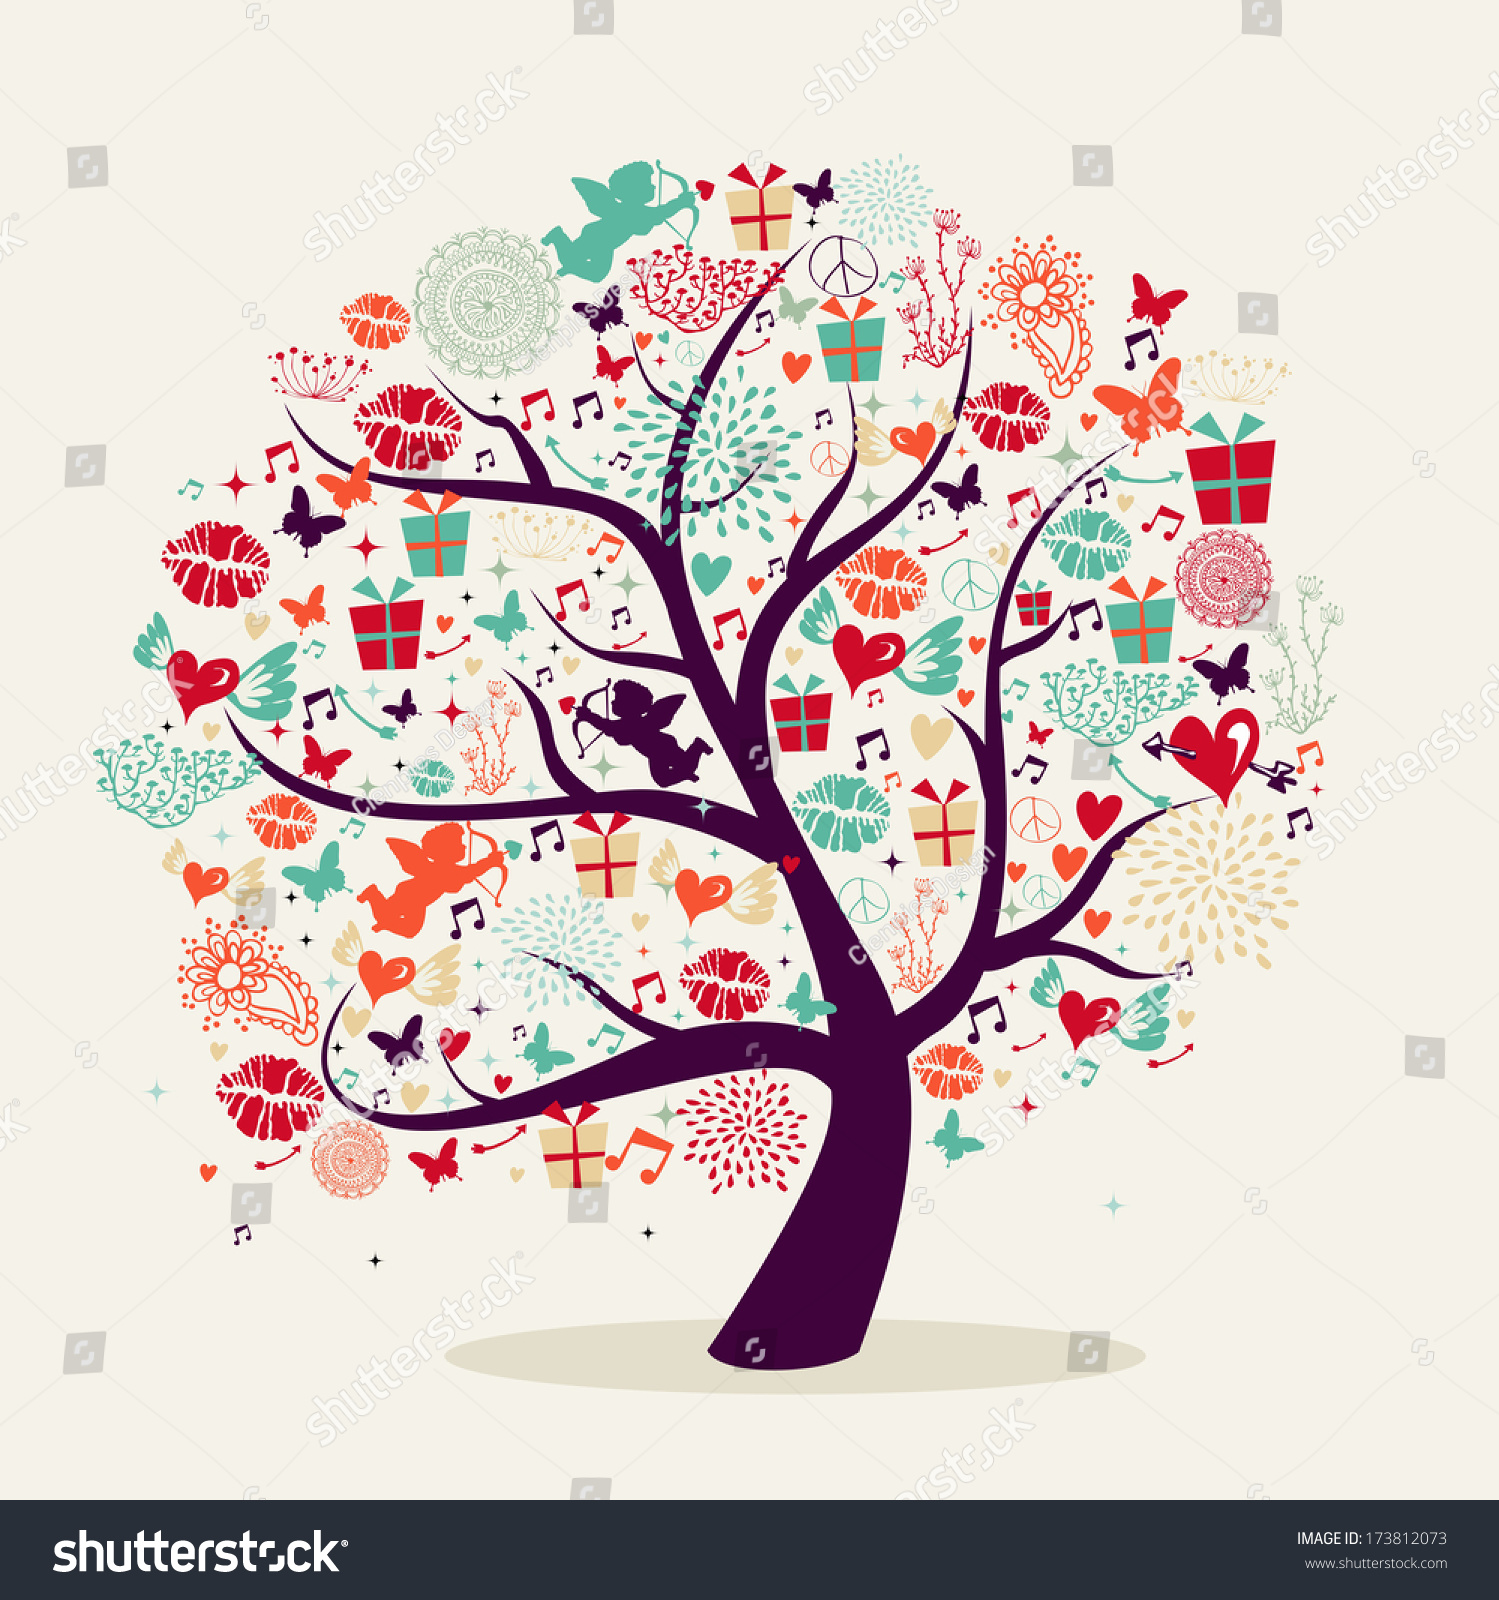 Colorful valentines day romantic tree greeting stock